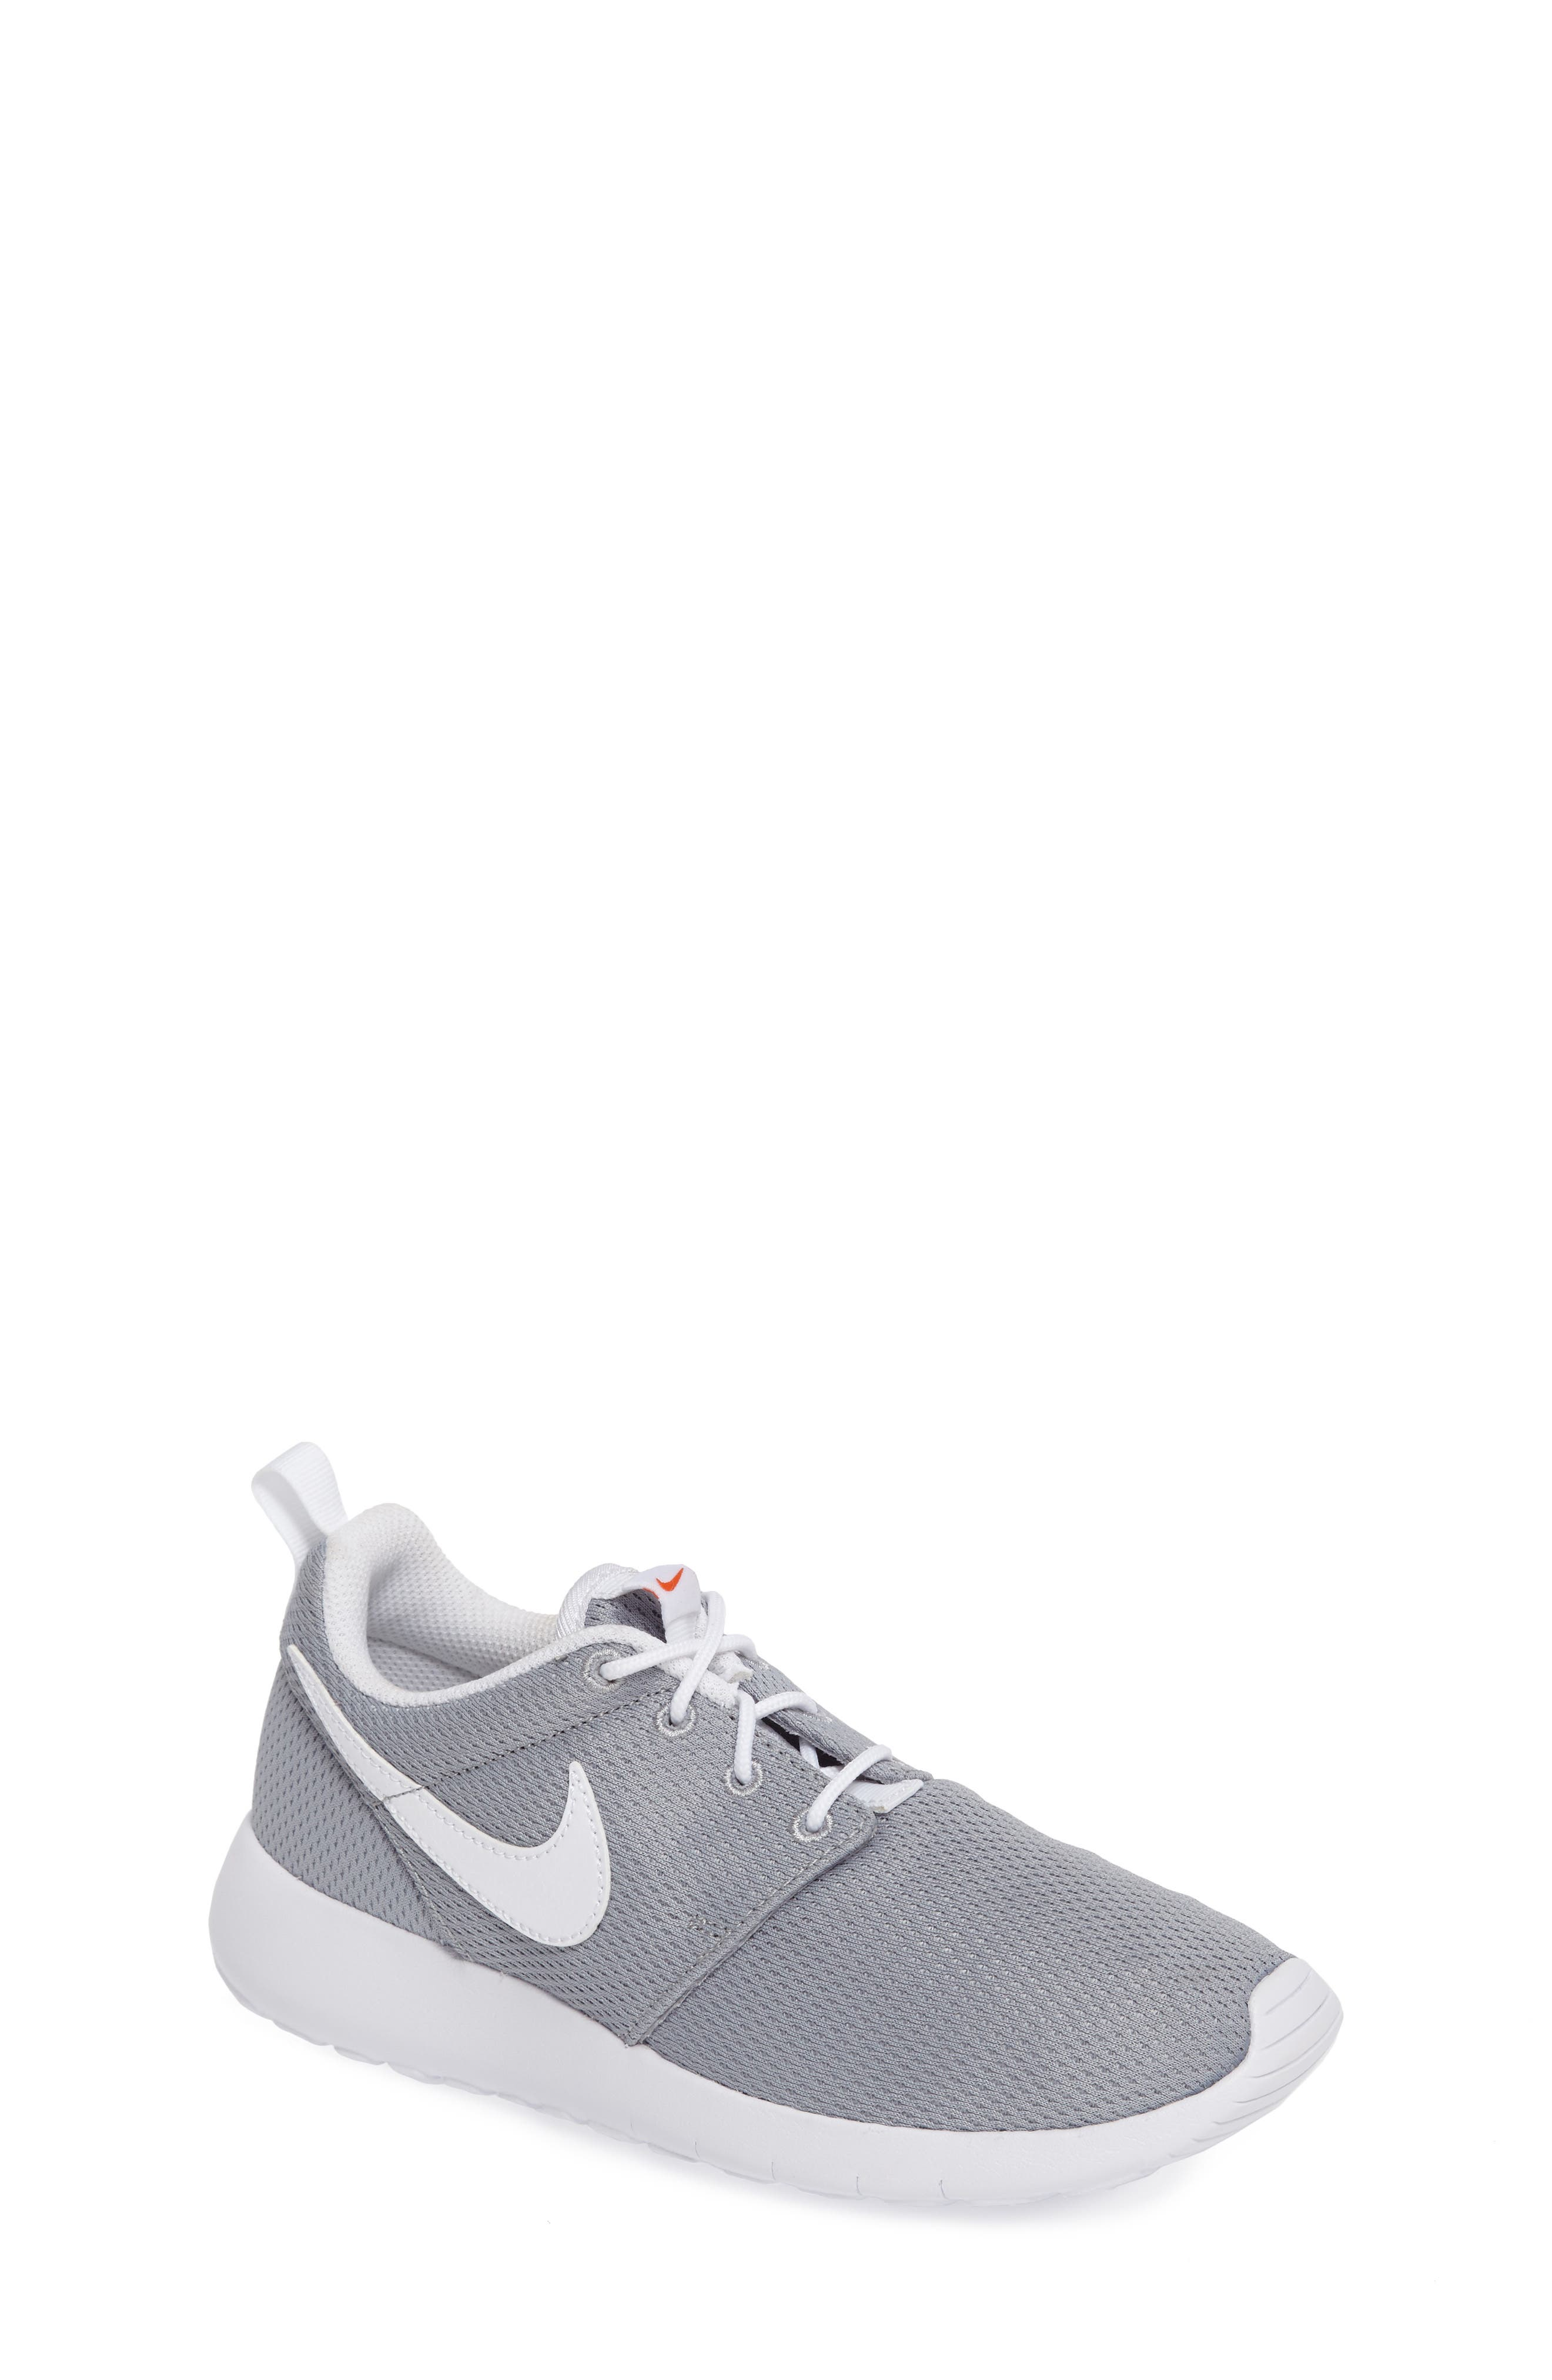 Alternate Image 1 Selected - Nike 'Roshe Run' Sneaker (Little Kid & Big Kid)